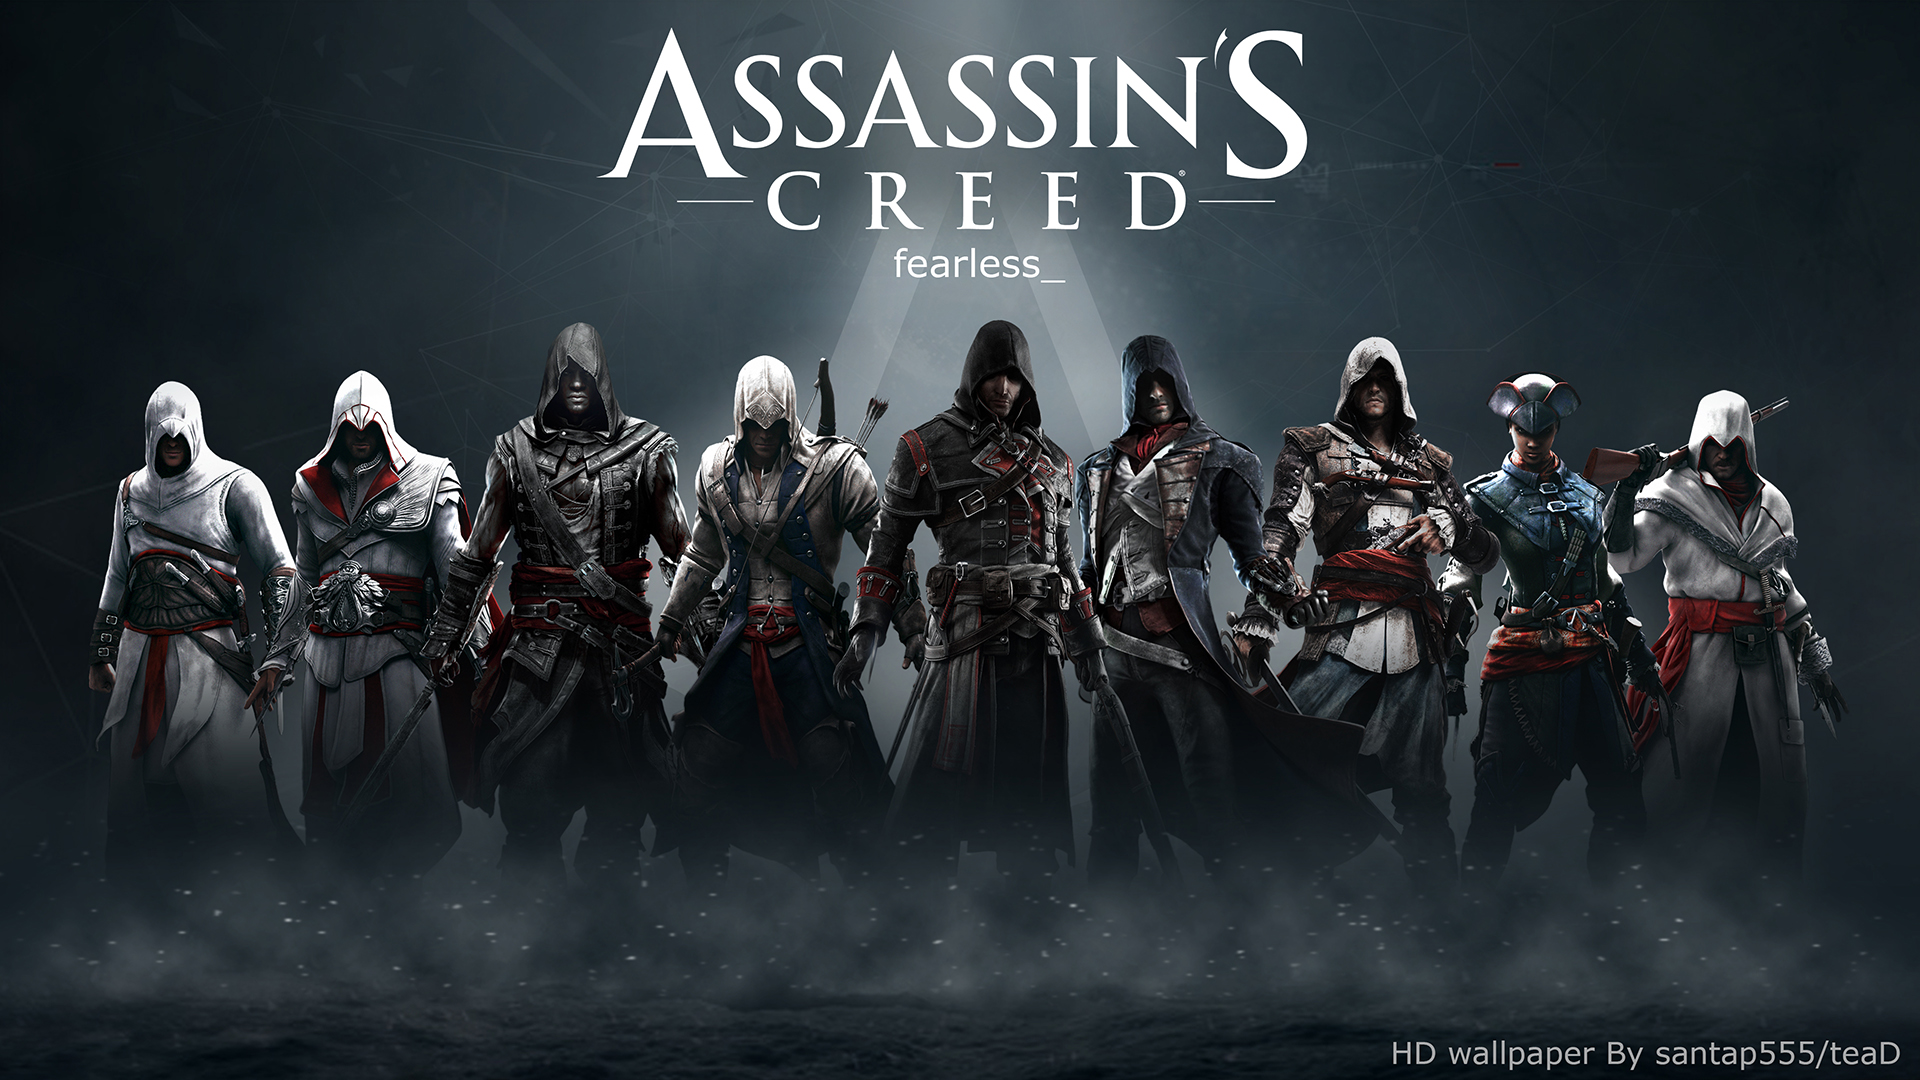 assassin creed full movie free download 720p